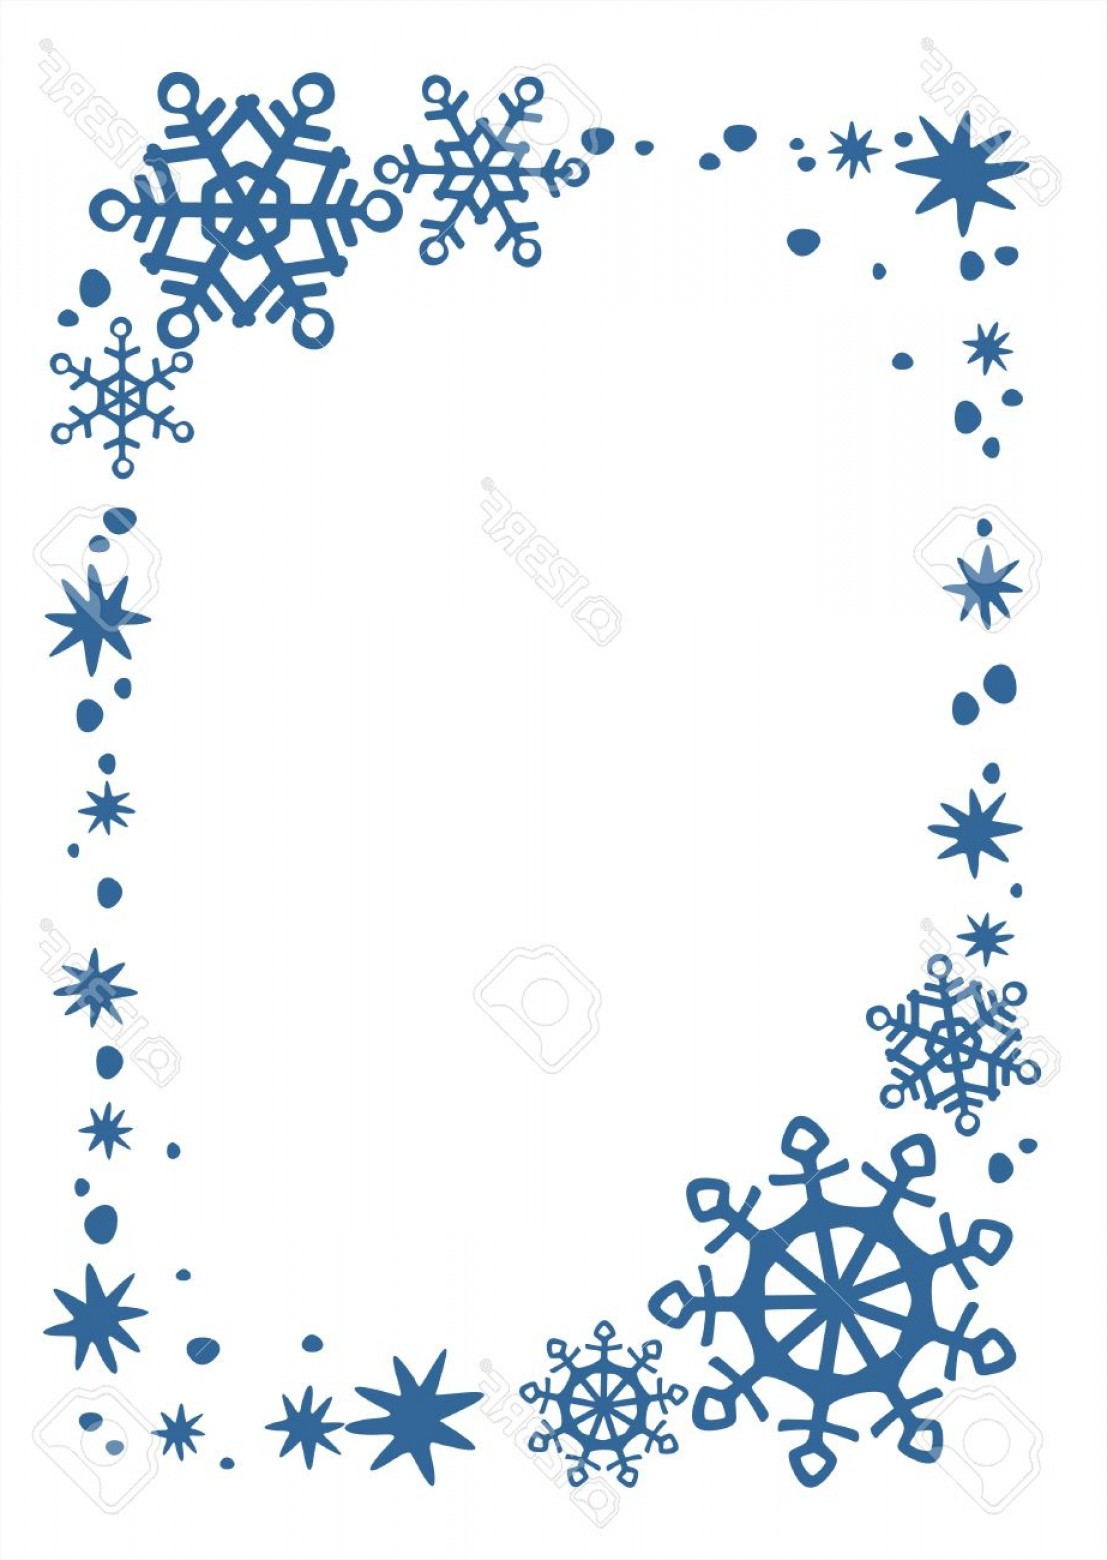 Snowflake Border Vector Art: Photoblue Snowflakes And Stars Border On A White Background Christmas Illustration